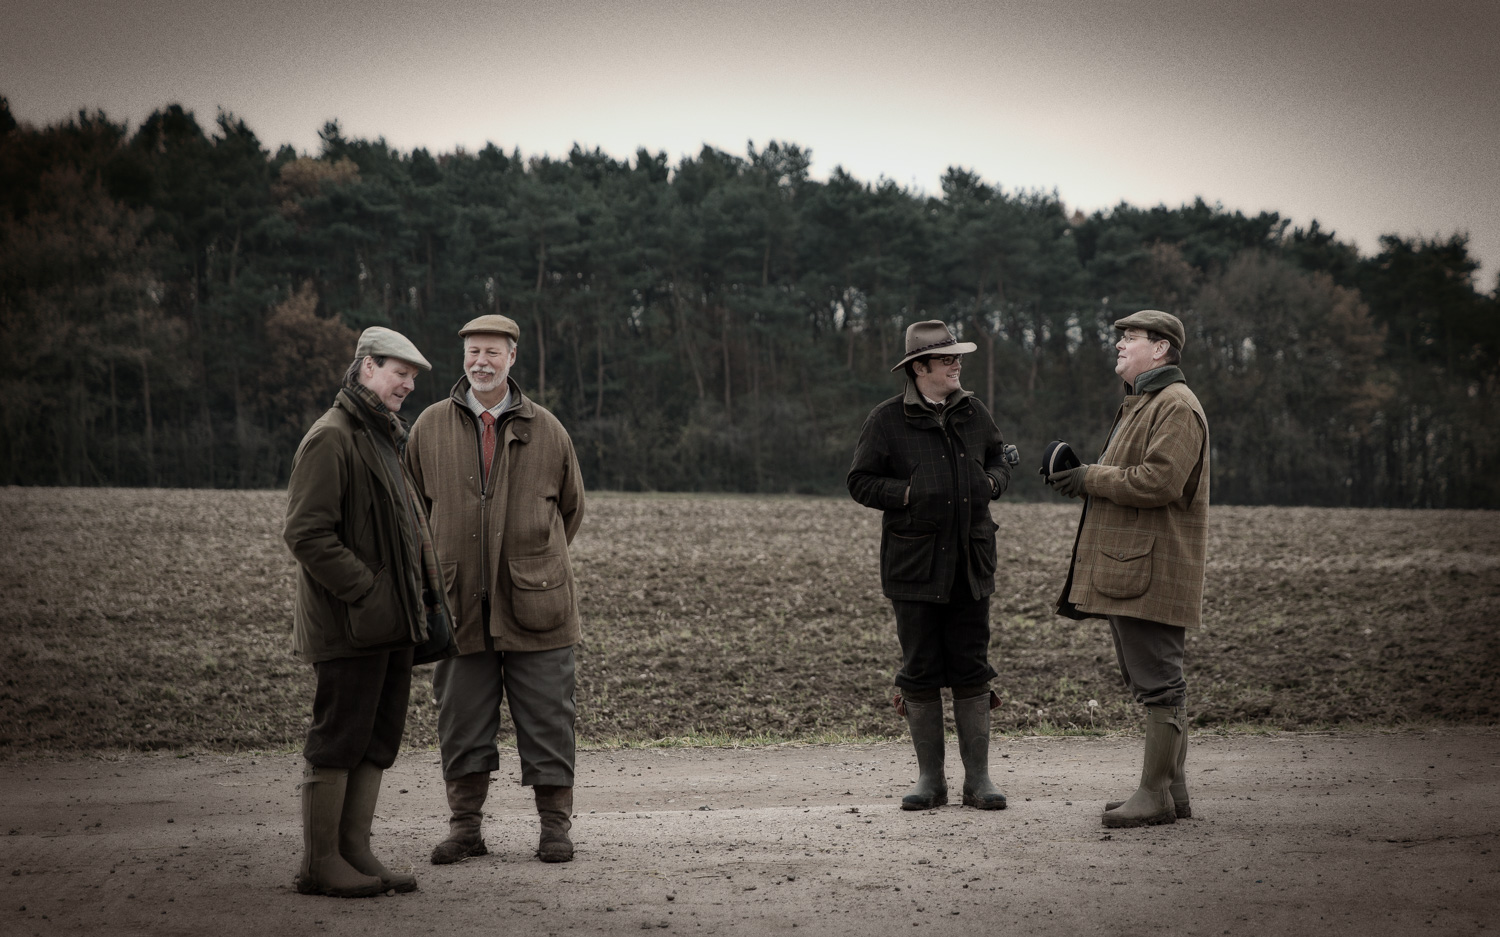 The Park. A Traditional Day of Shooting in England by Tim Wilkes.